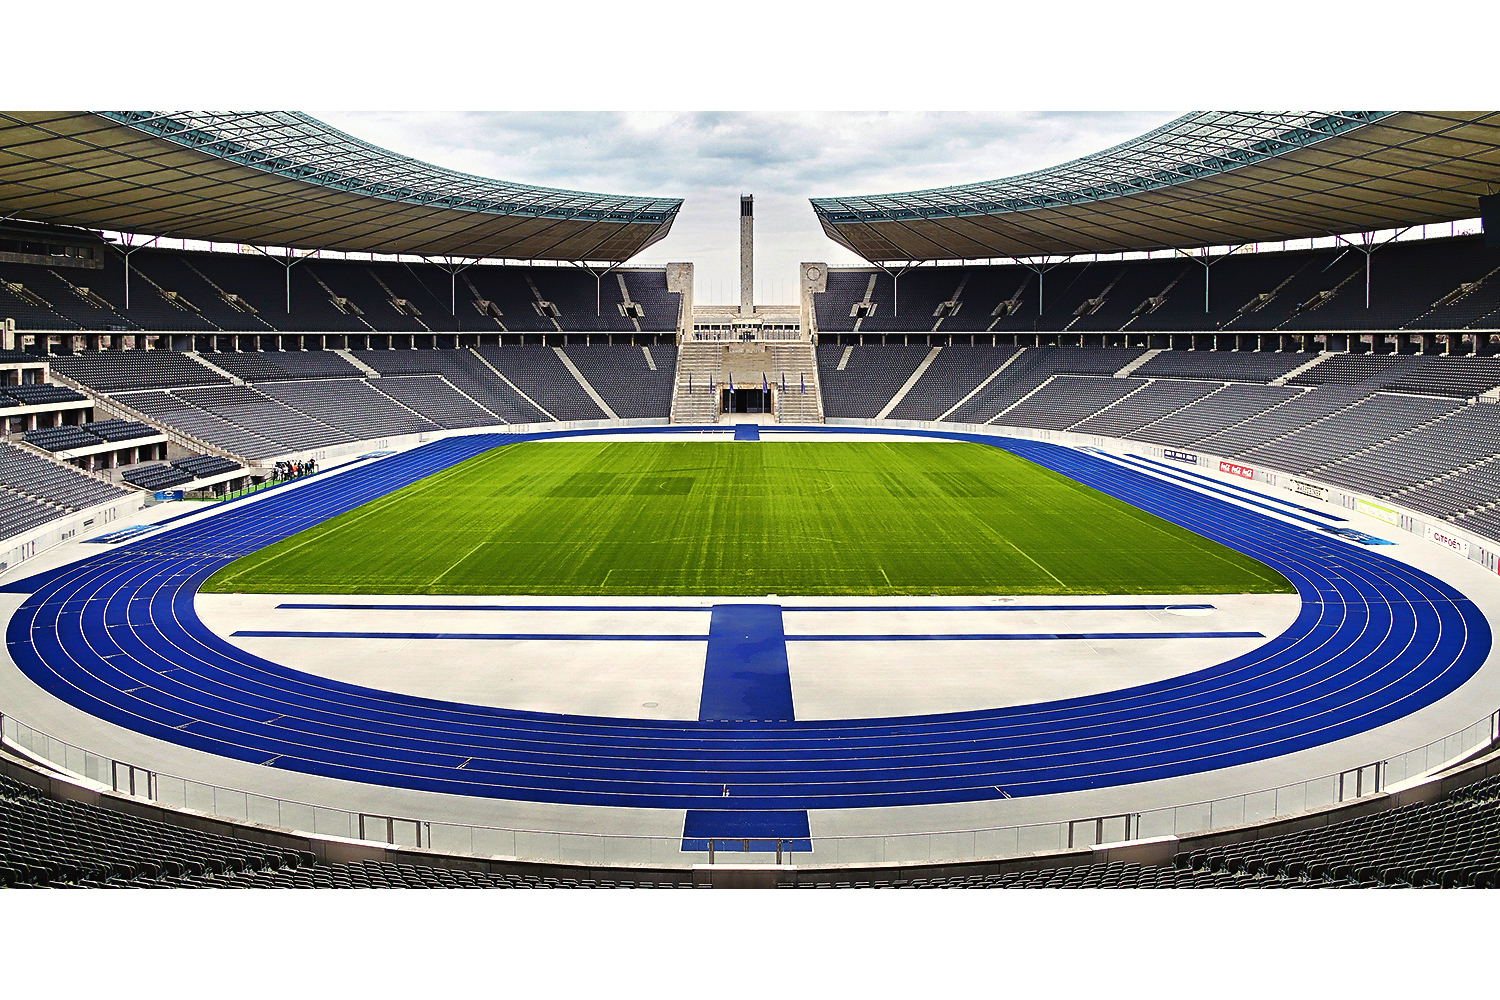 Architectural photography interior: Olympiastadion (Olympic stadium) Berlin, Deutschland. Architects: Werner March/Albert Speer, Friedrich Wilhelm Krahe. Image (C) Matthewlingphotography.co.uk